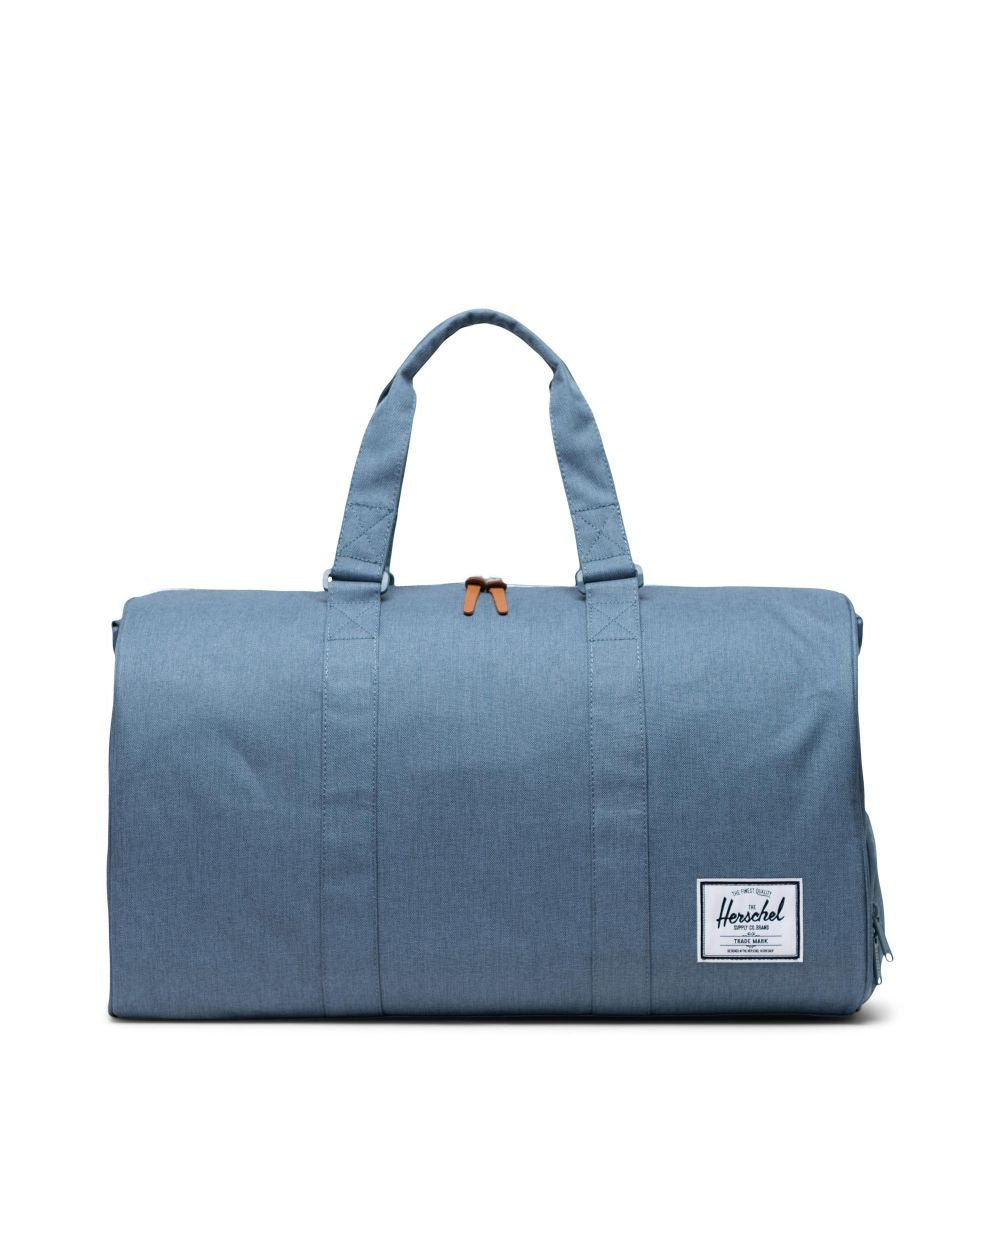 HERSCHEL - NOVEL DUFFLE IN BLUE MIRAGE CROSSHATCH